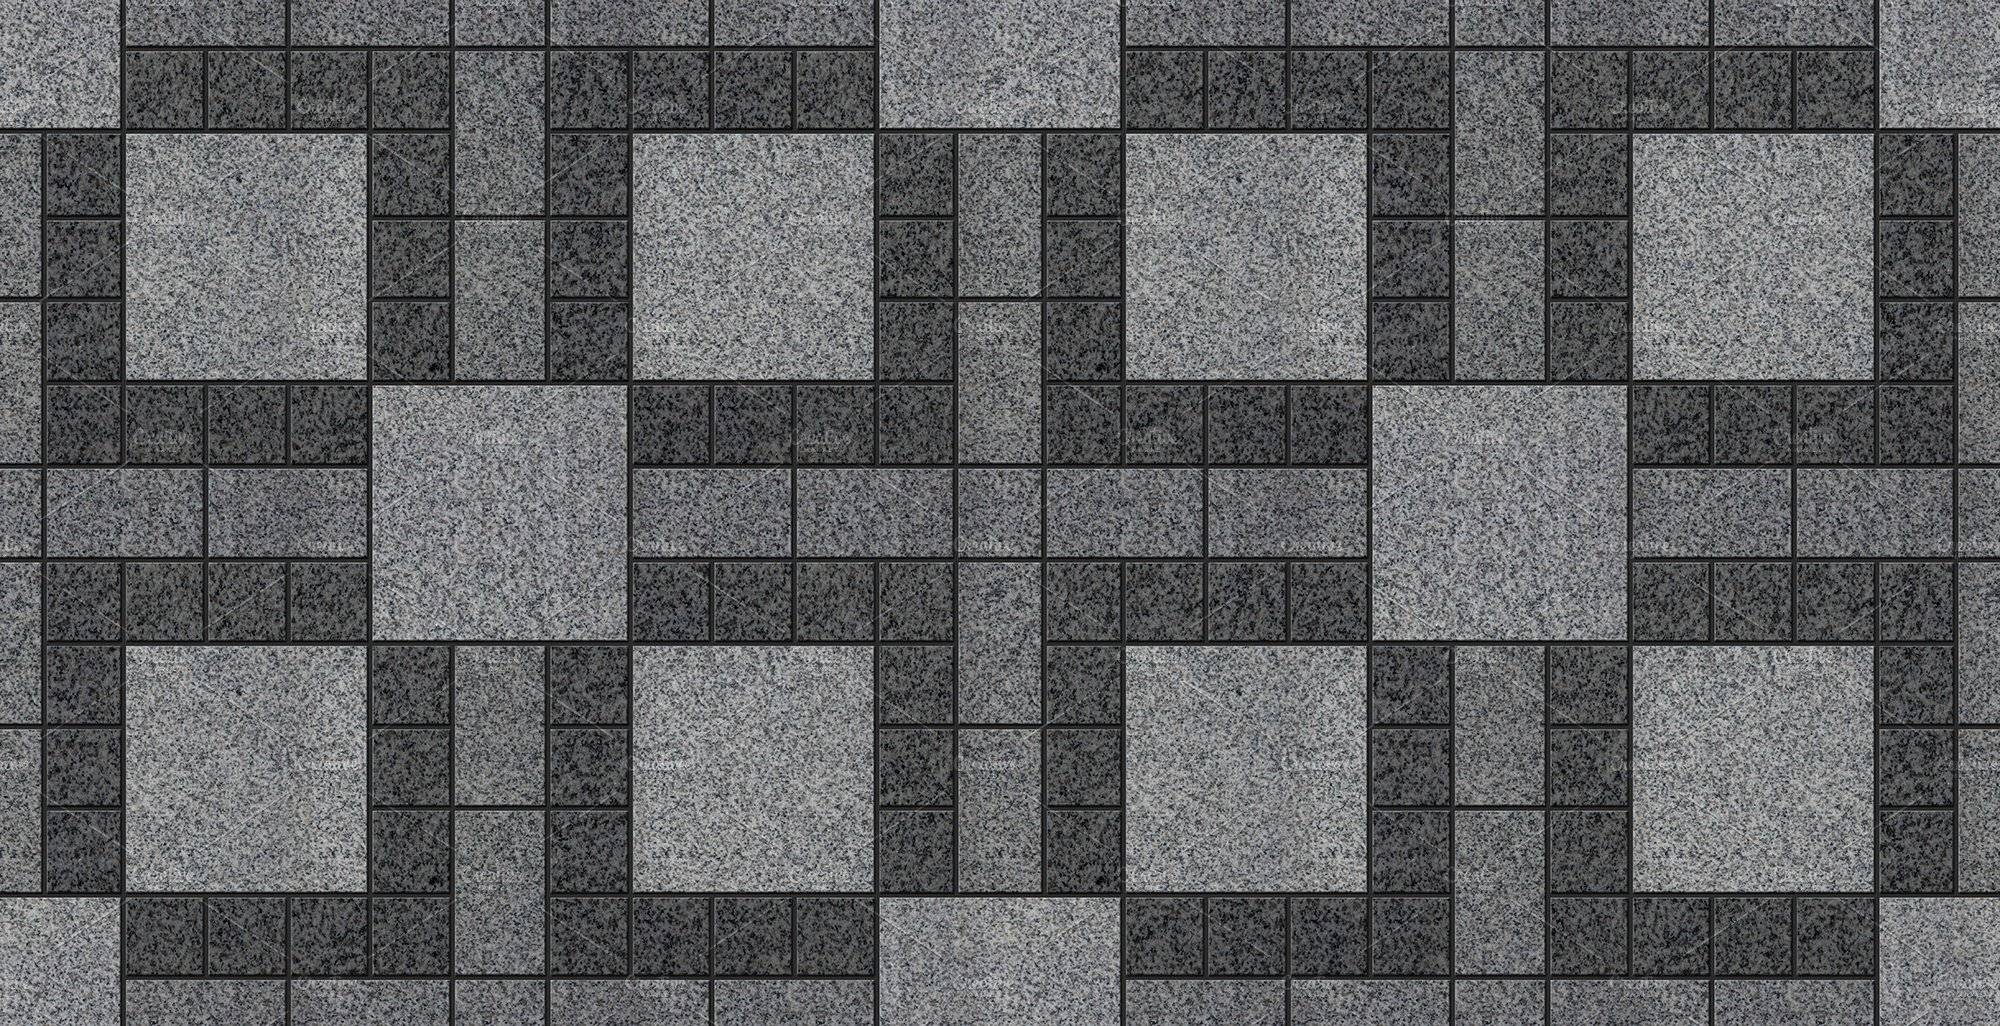 Paving Tiles Seamless Texture Graphic Patterns